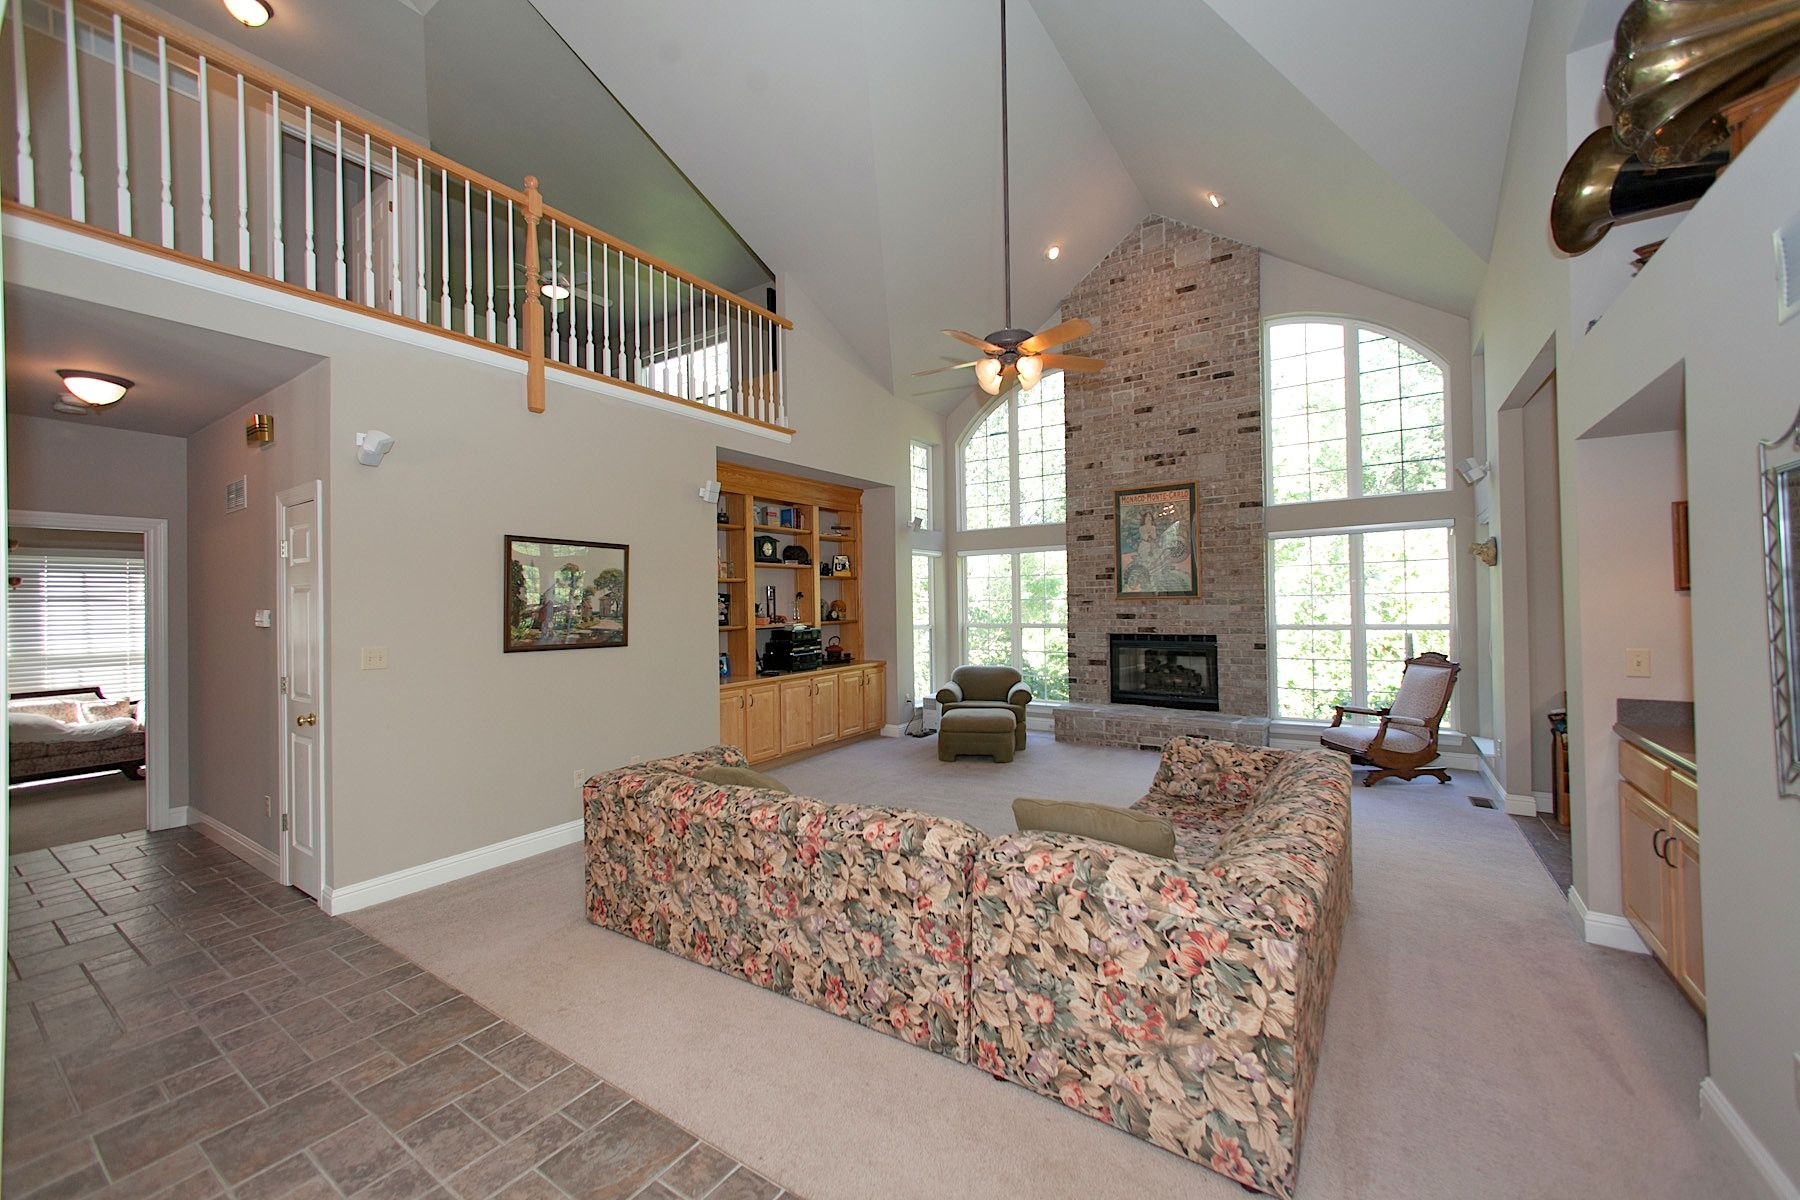 2 Story Great Room With Floor To Ceiling Windows Vaulted